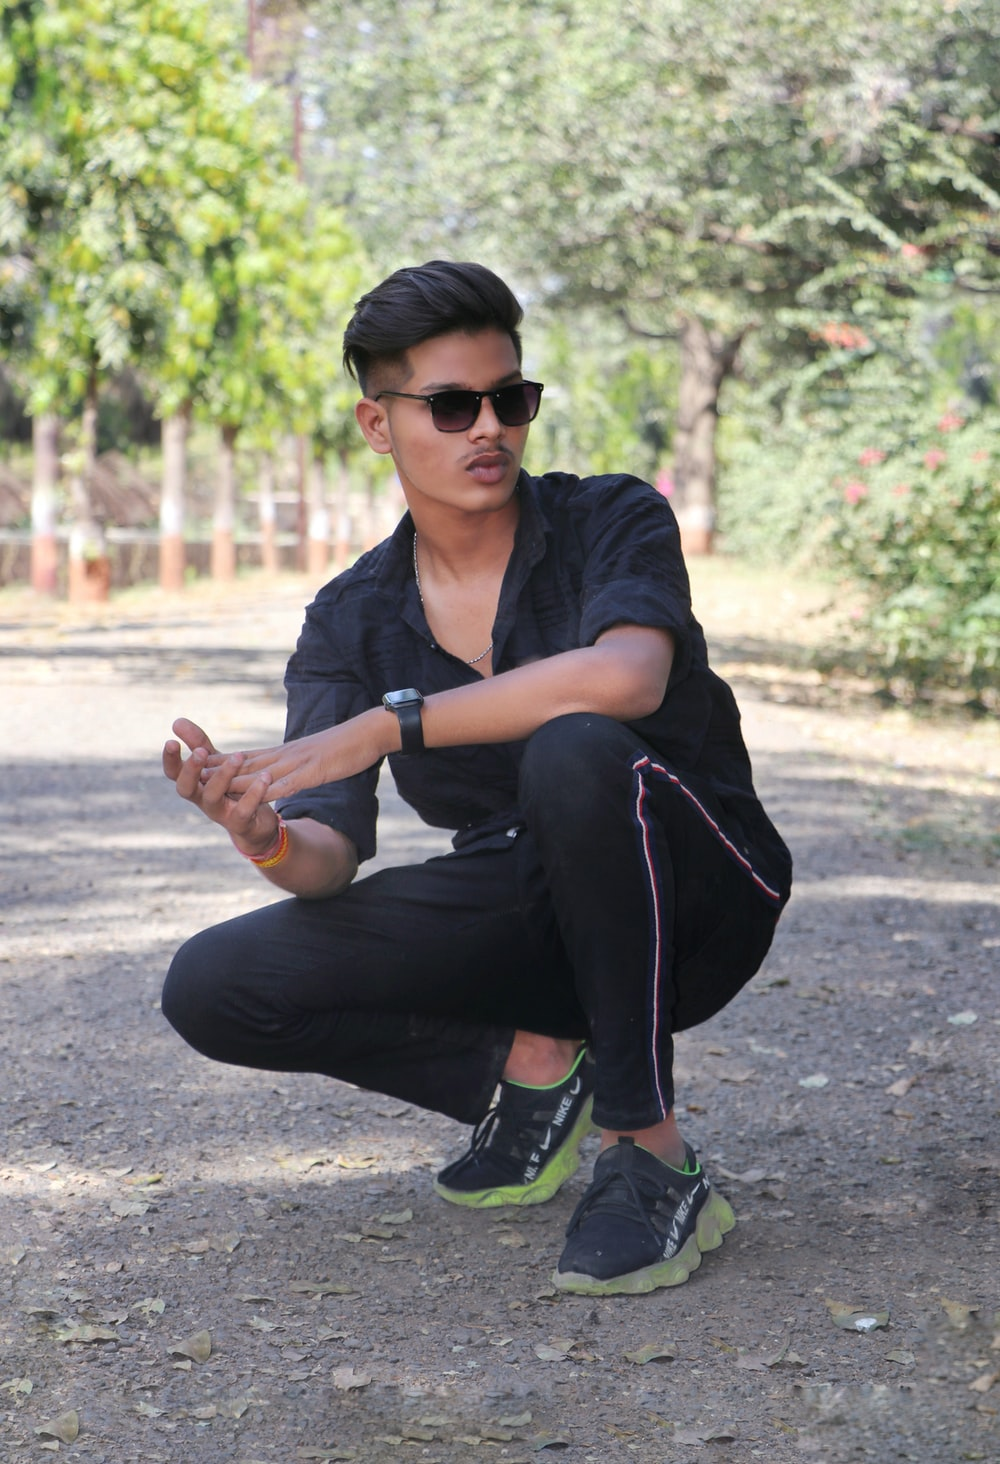 man in black t-shirt and black pants sitting on road during daytime